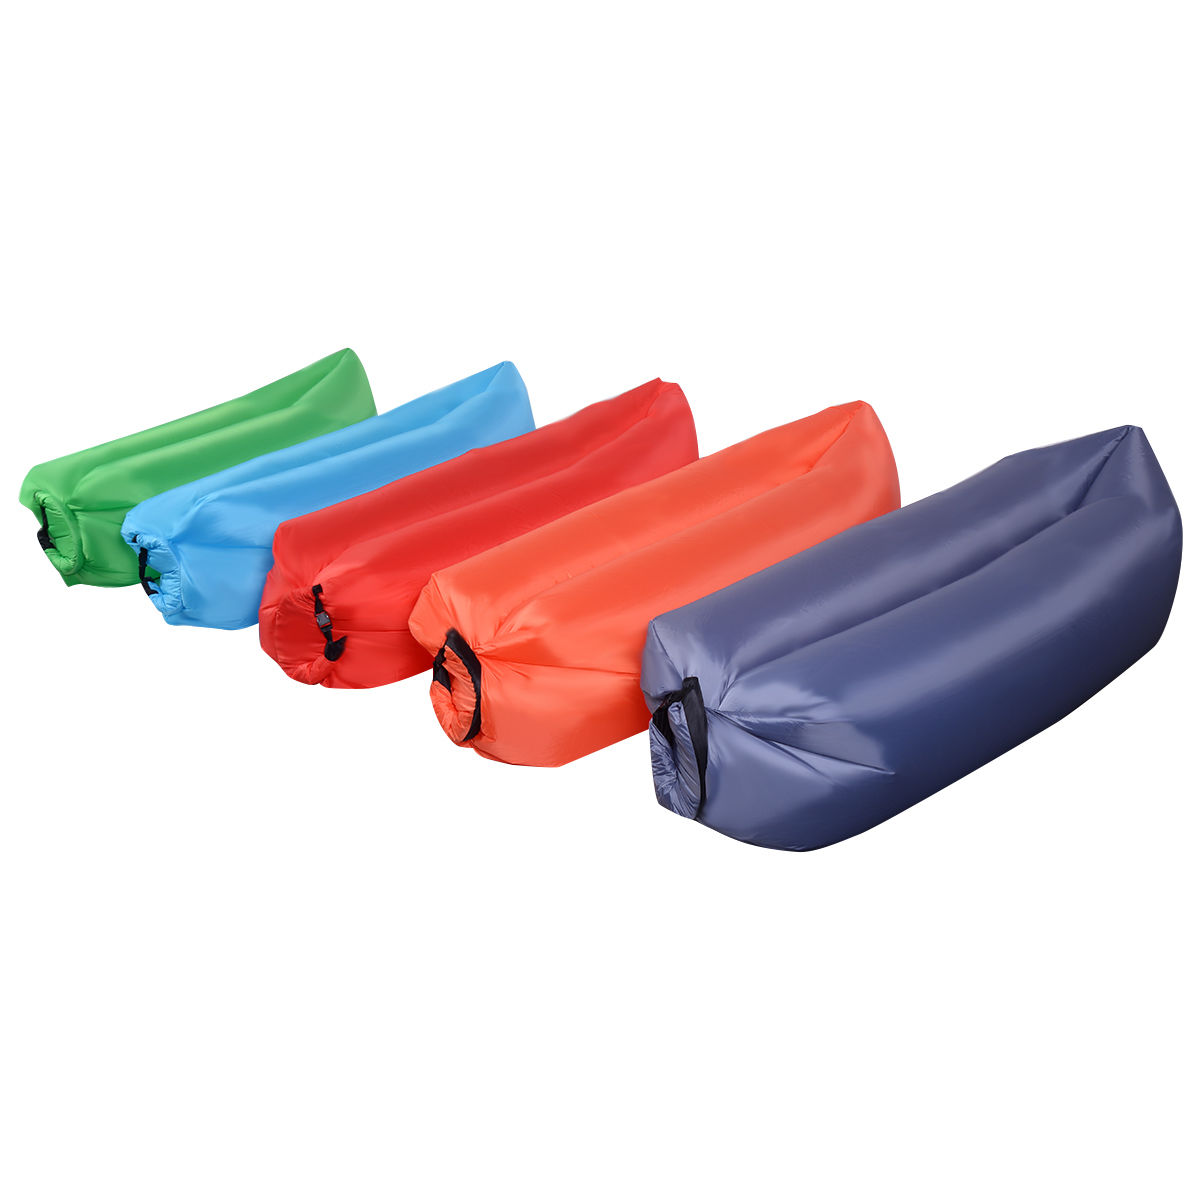 Costway Outdoor Lazy Inflatable Couch Air Sleeping Sofa Lounger Bag Camping Bed Portable 5